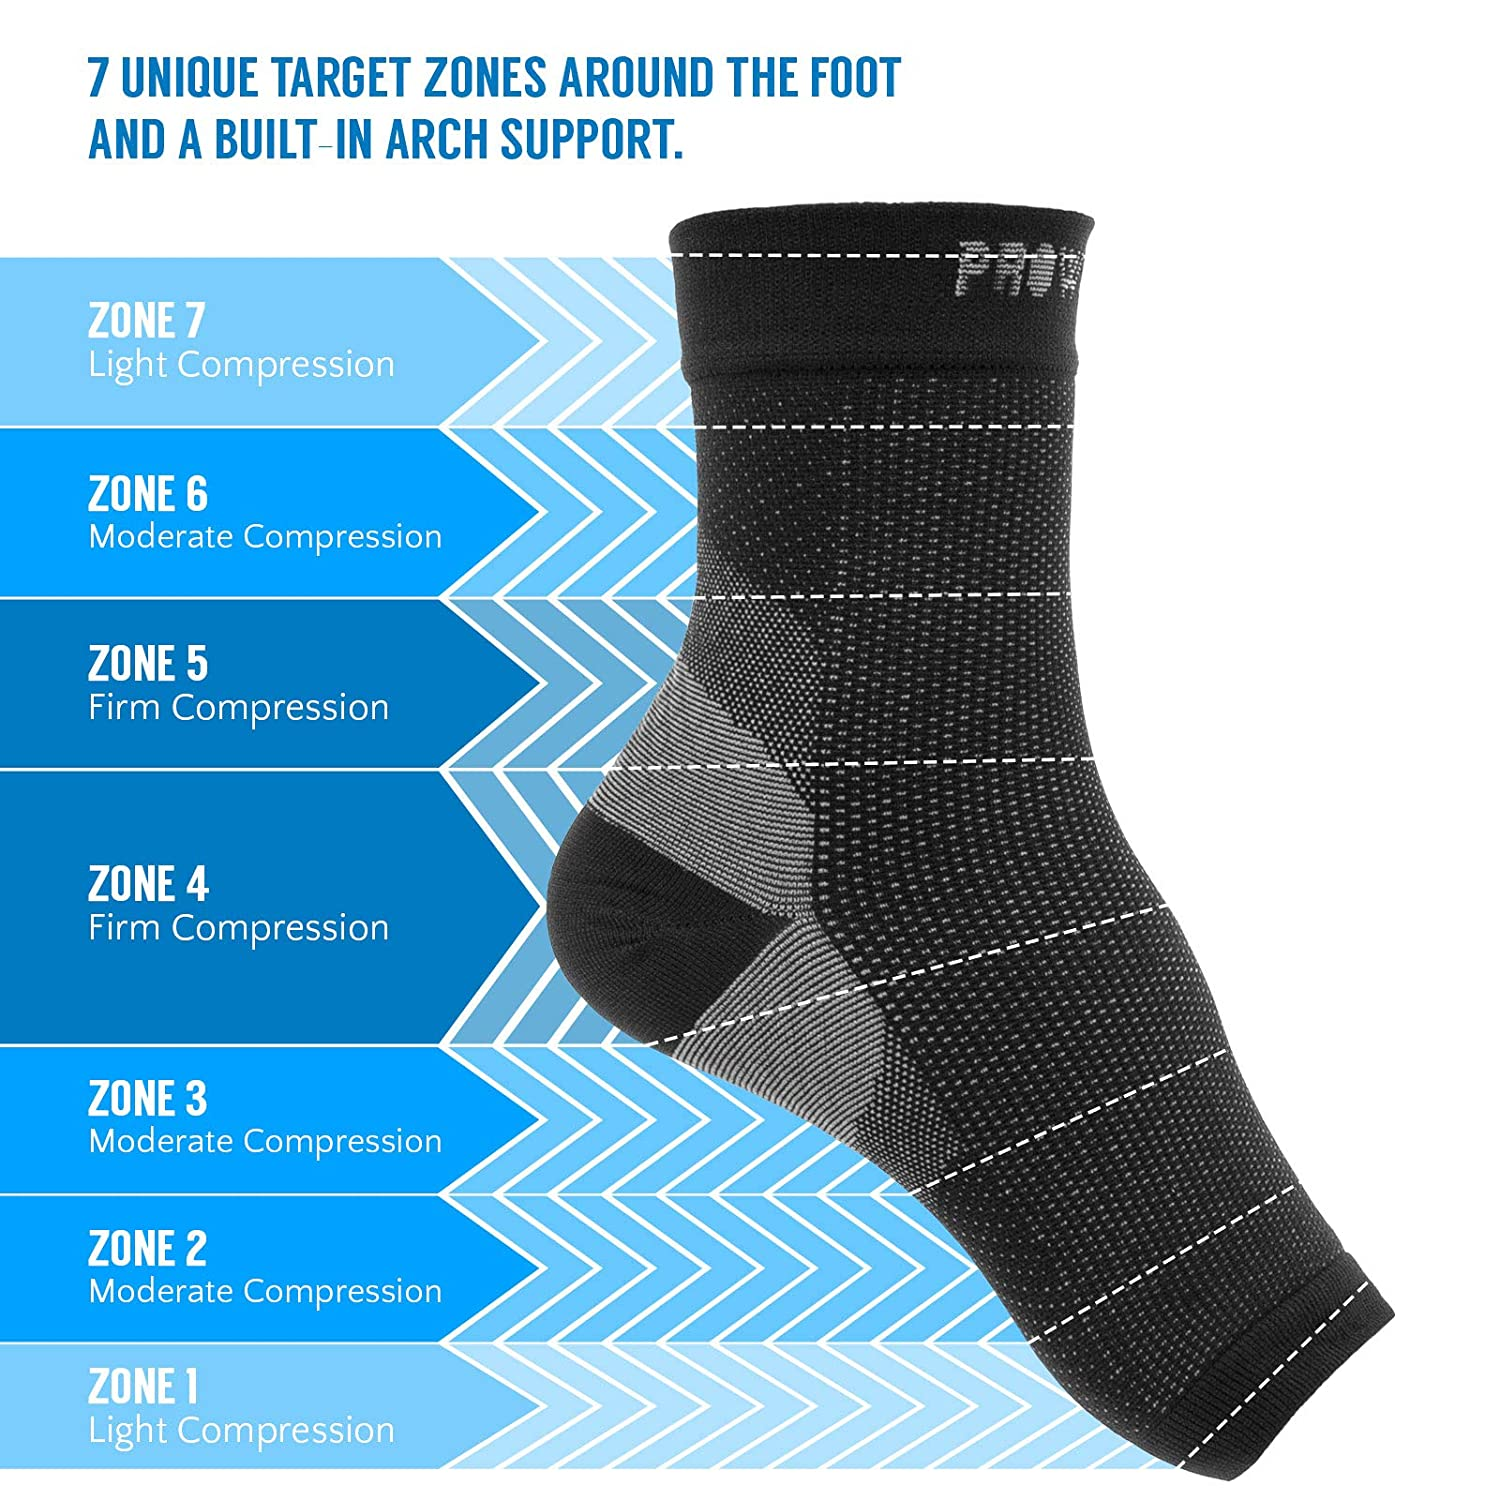 fa1b97e52f Proworks Plantar Fasciitis Compression Socks (Pair), Night Splint  Alternative & Open-Toe Foot Sleeve for Targeted All-Day Heel, Sole & Ankle Pain  Relief, ...